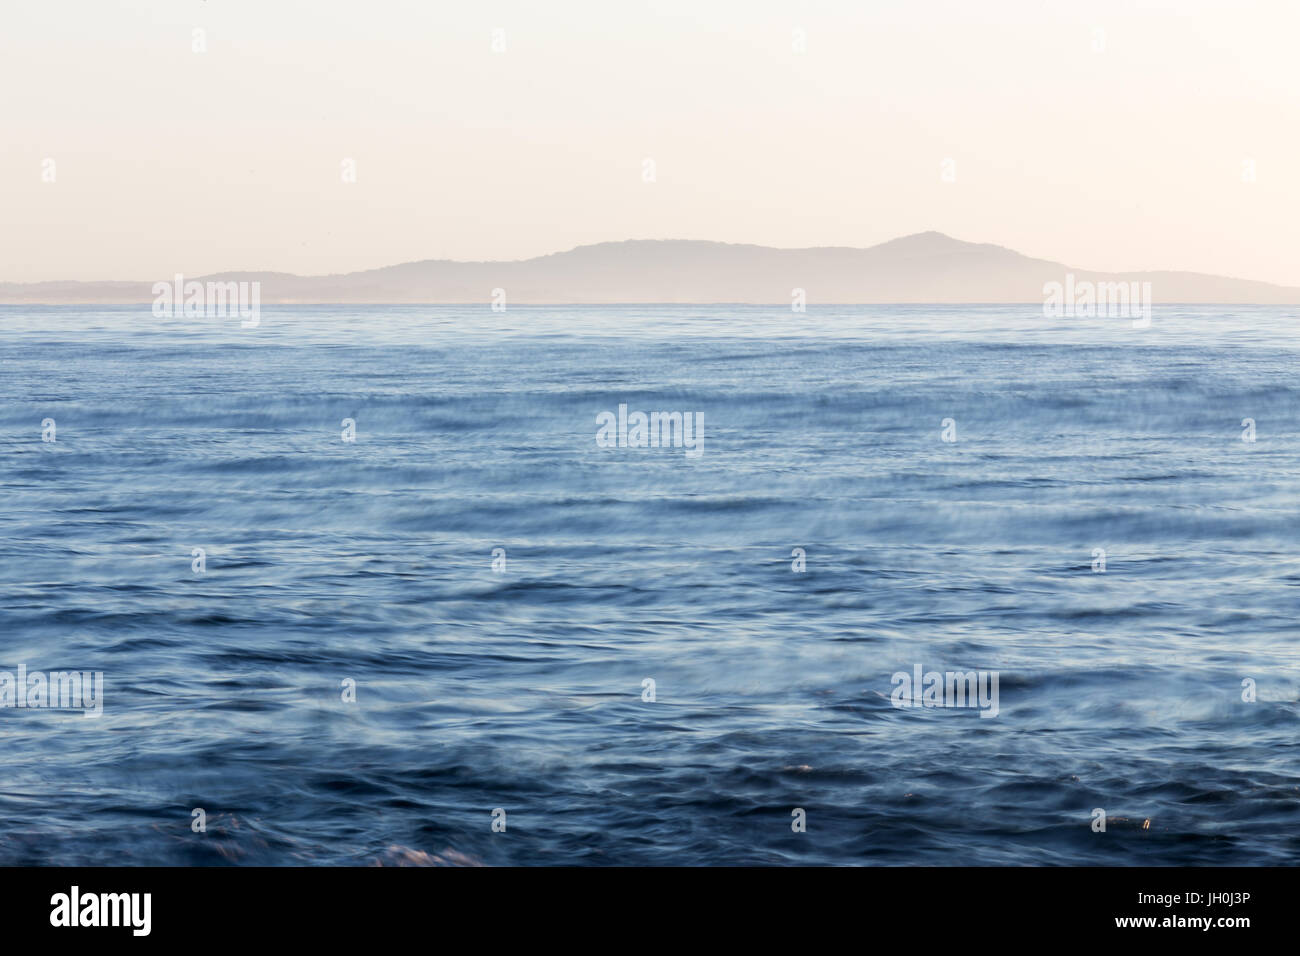 An empty body of ocean and a distant land mass on the east coast of Australia. - Stock Image